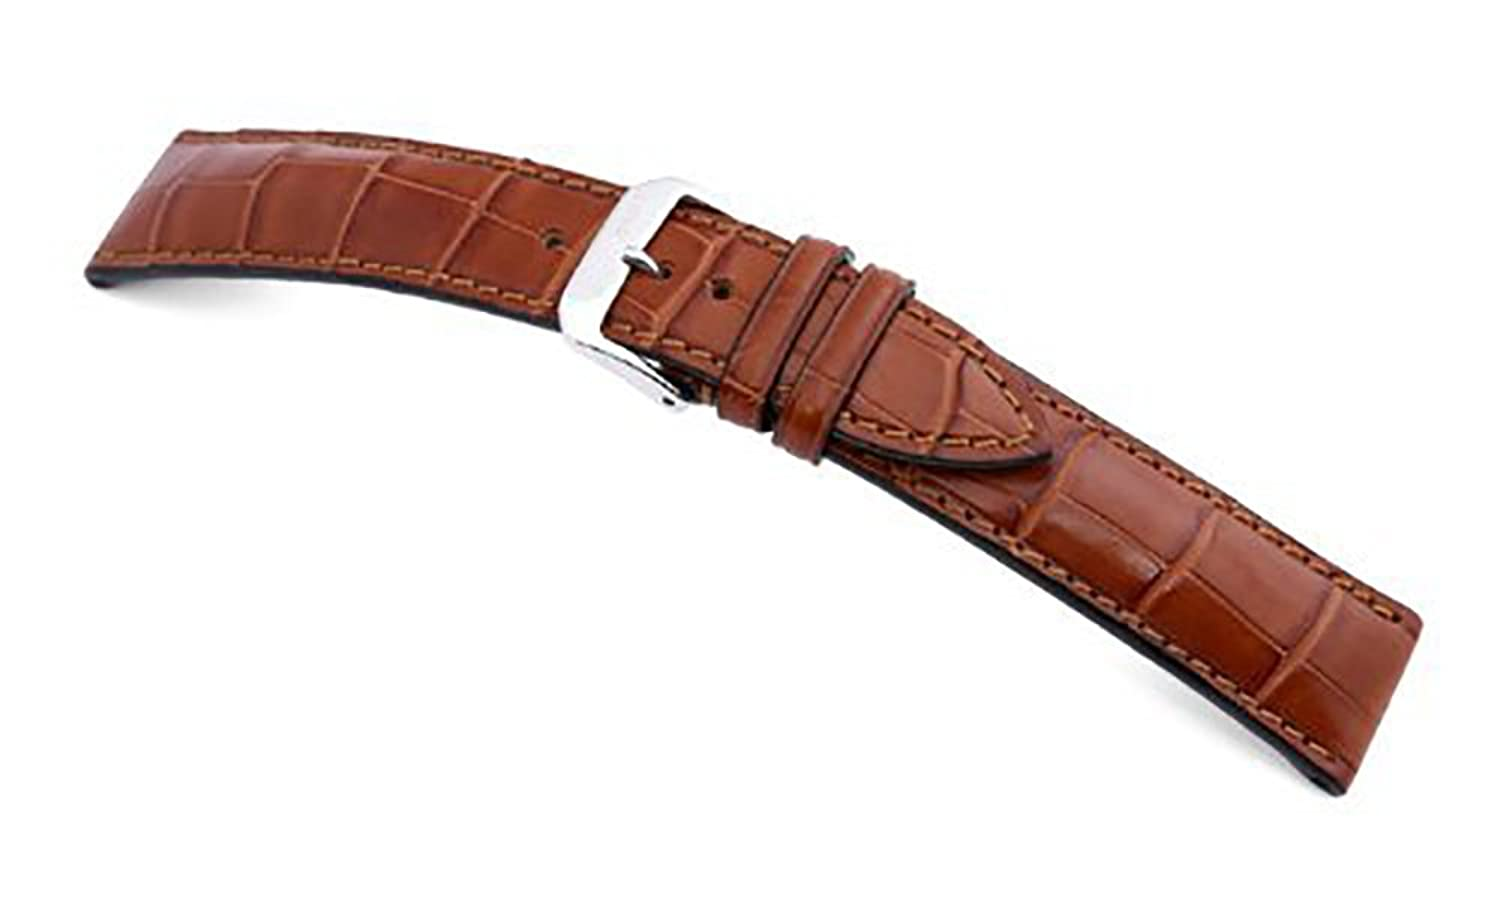 RIOS1931 Uhrenarmband Monarch Echt Alligatorenleder in matt - Fullcut - mit Alligatorenfutter - Cognac - Bandanstoss